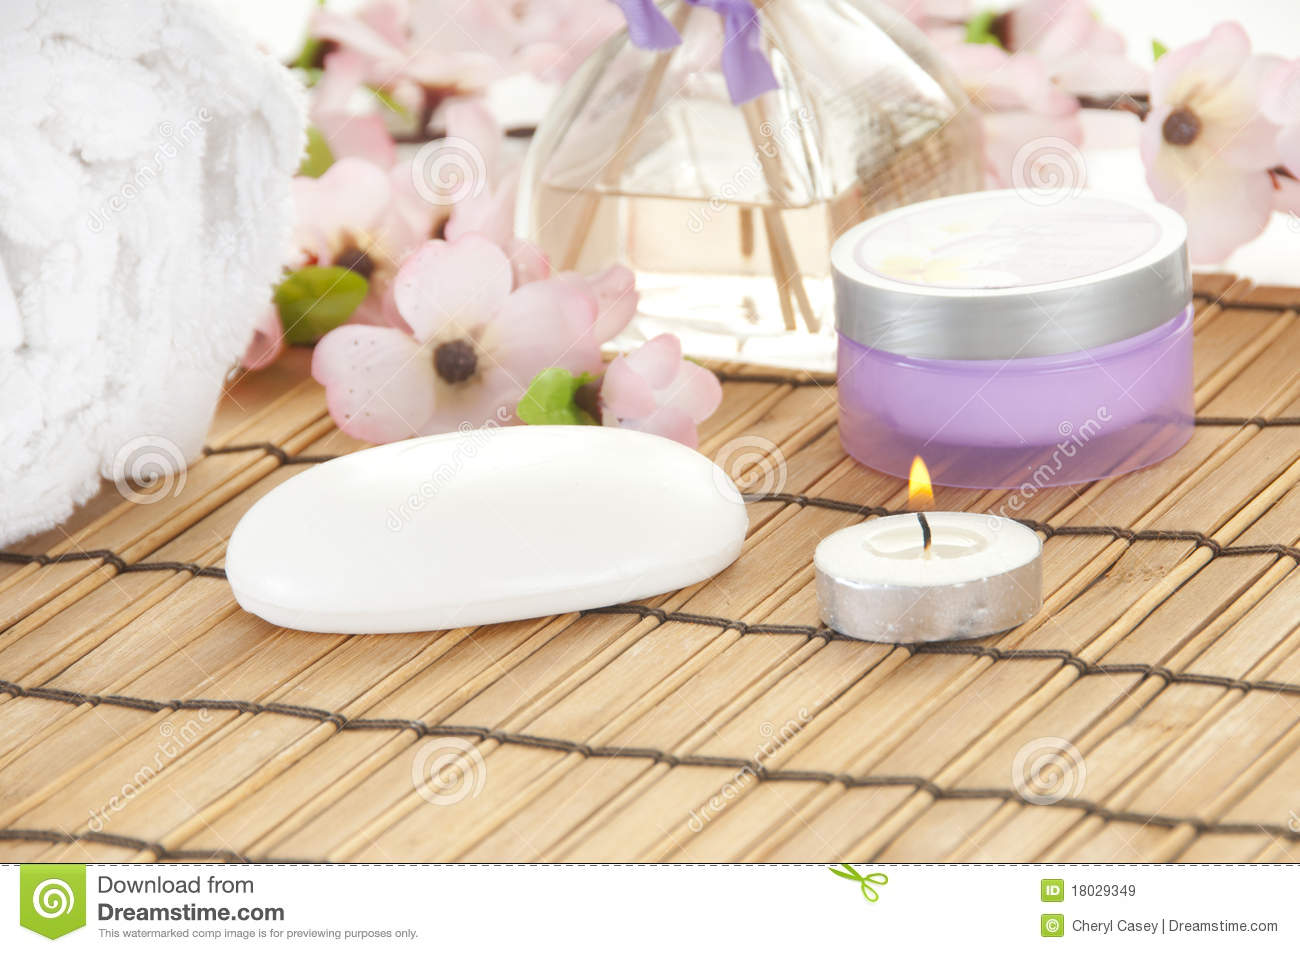 Items in spa for relaxing